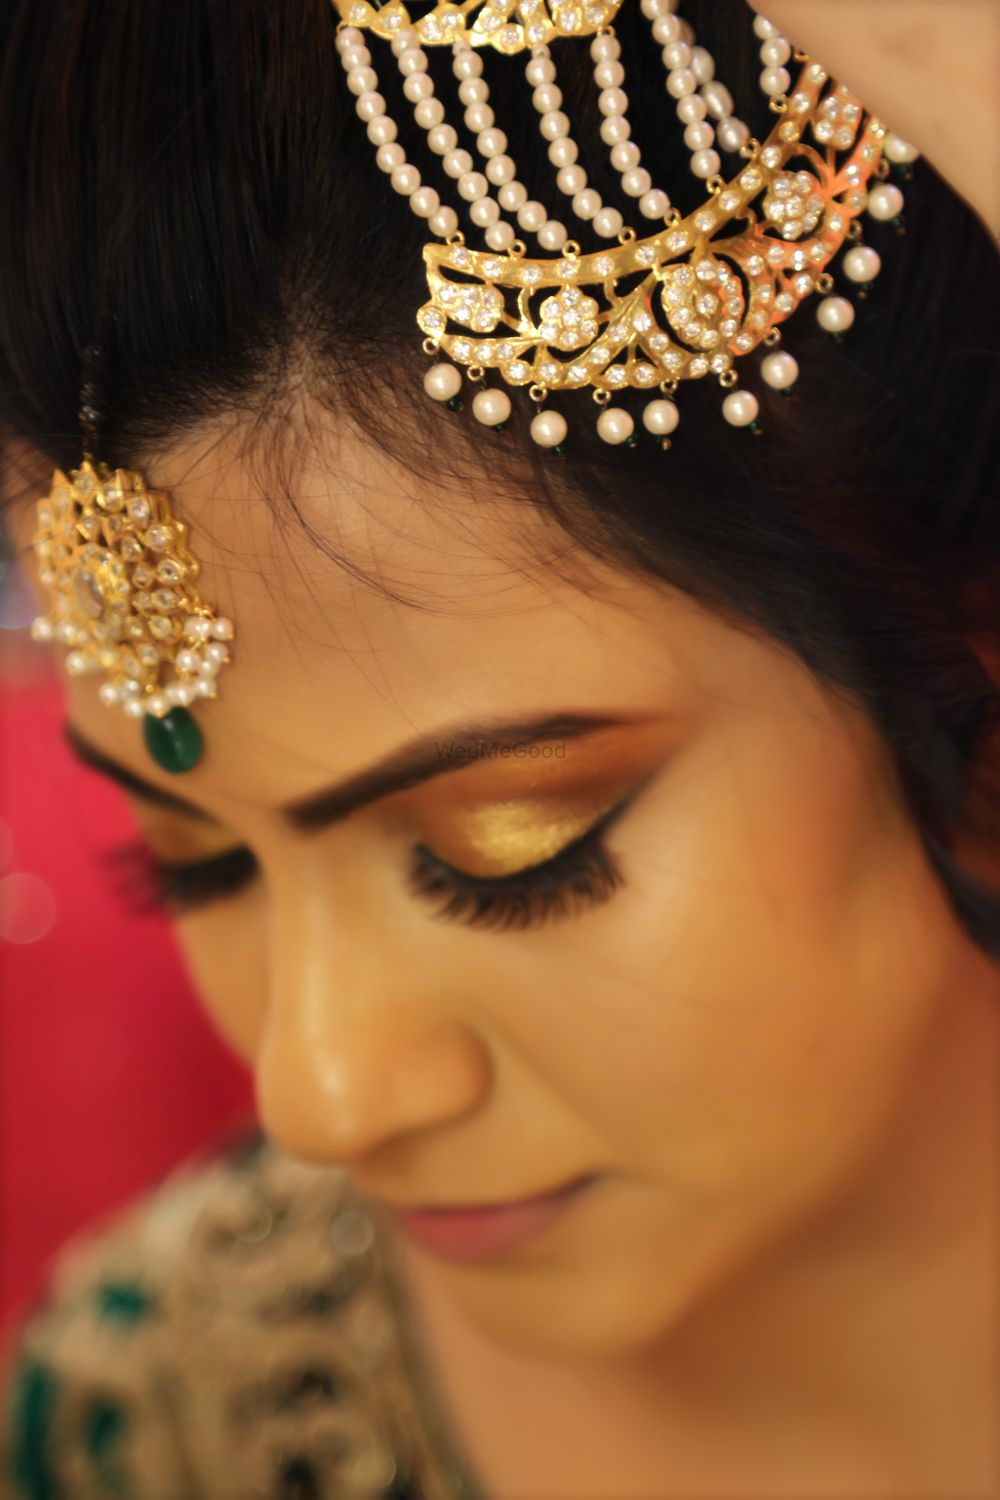 Photo From Brides - By Makeup By Nehad Imran